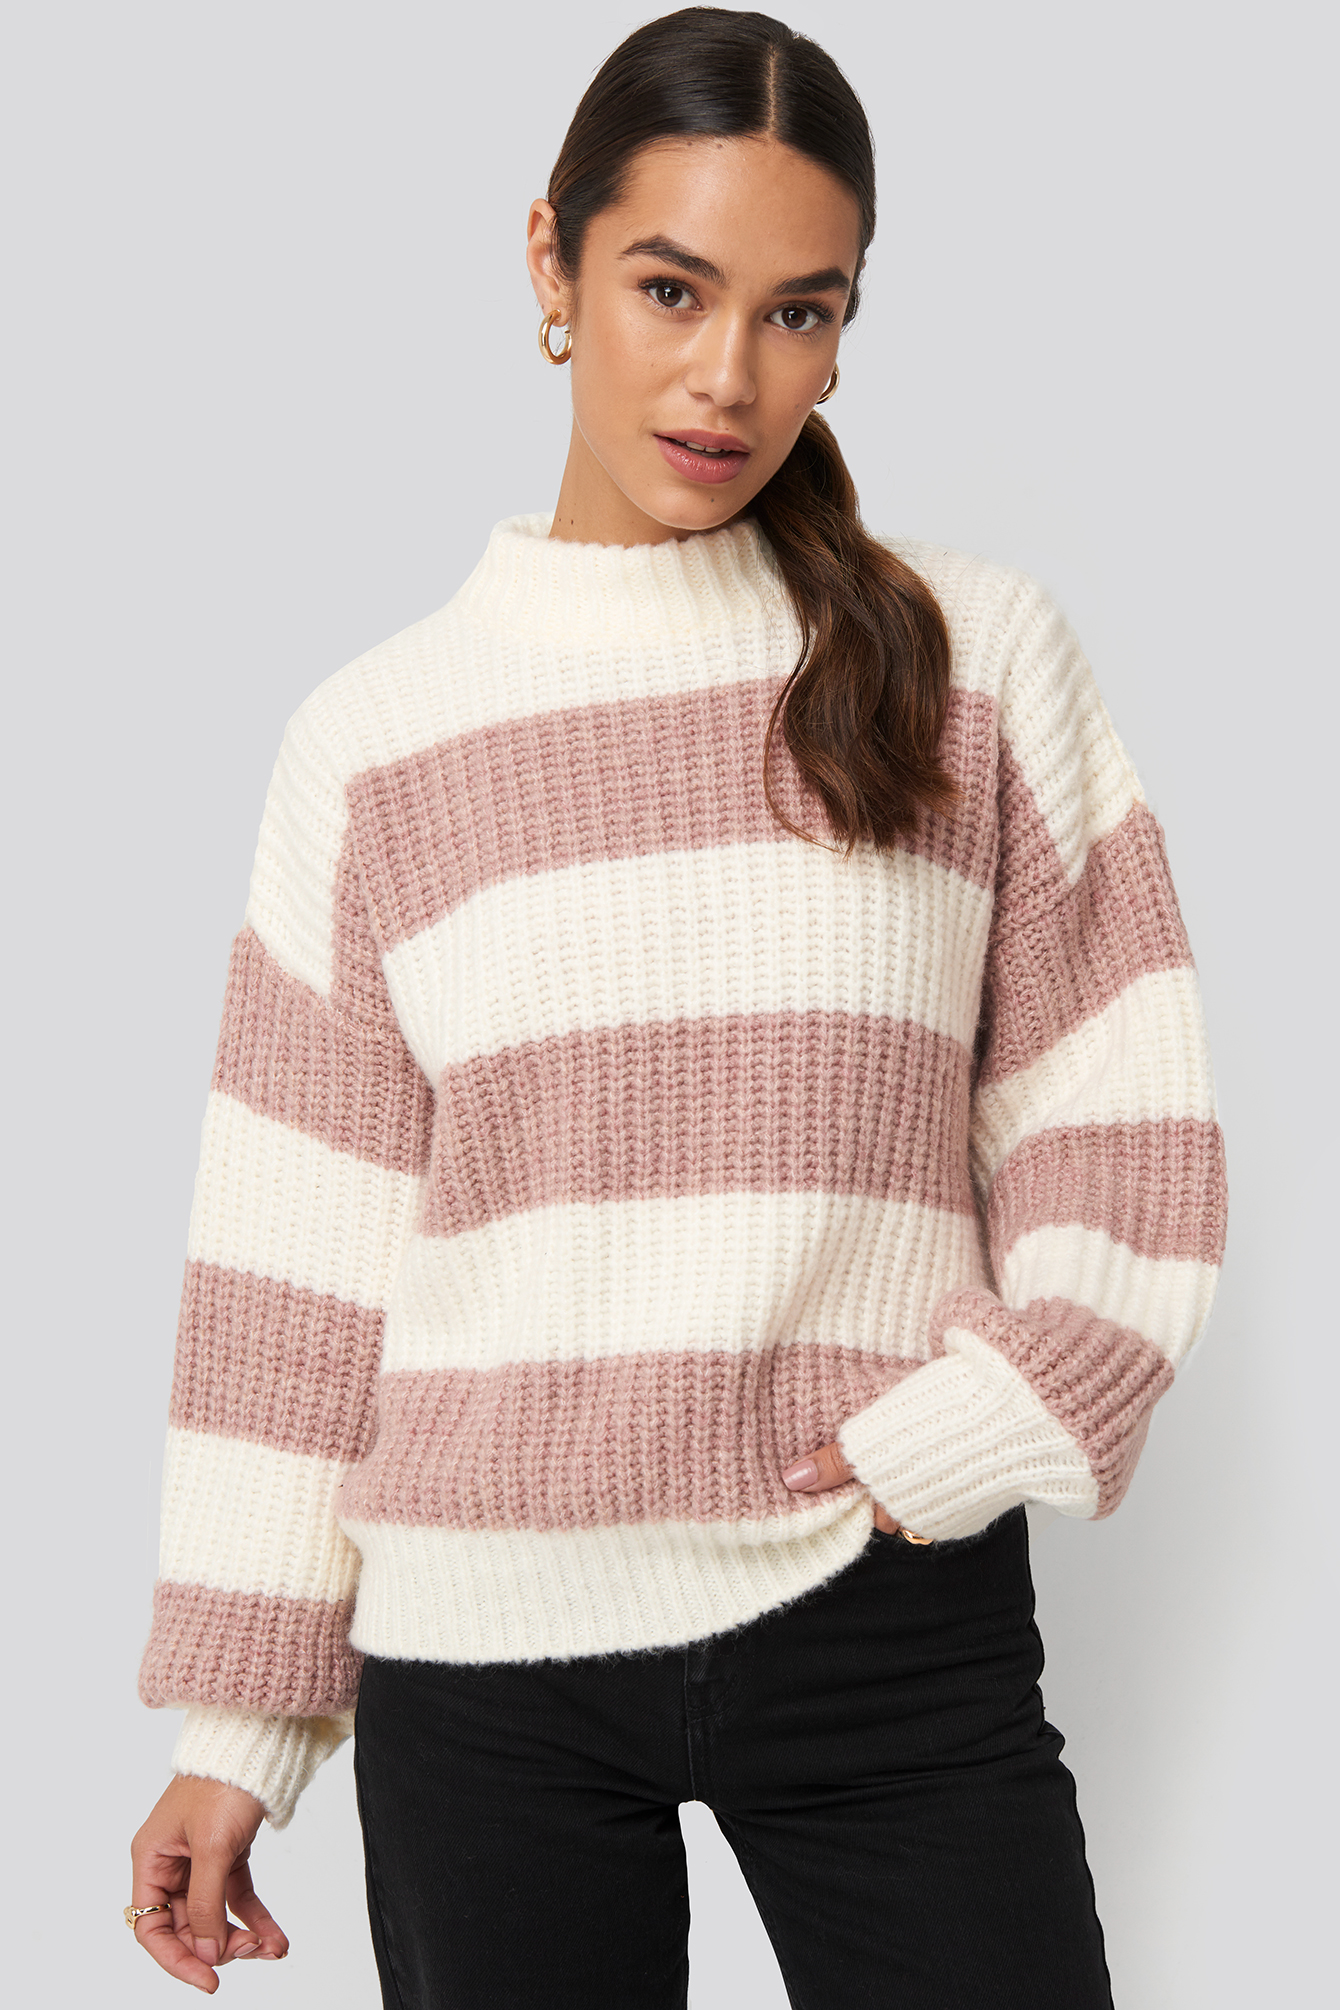 Queen Of Jetlags X Na-kd Striped Oversized Knitted Sweater White In White/pink